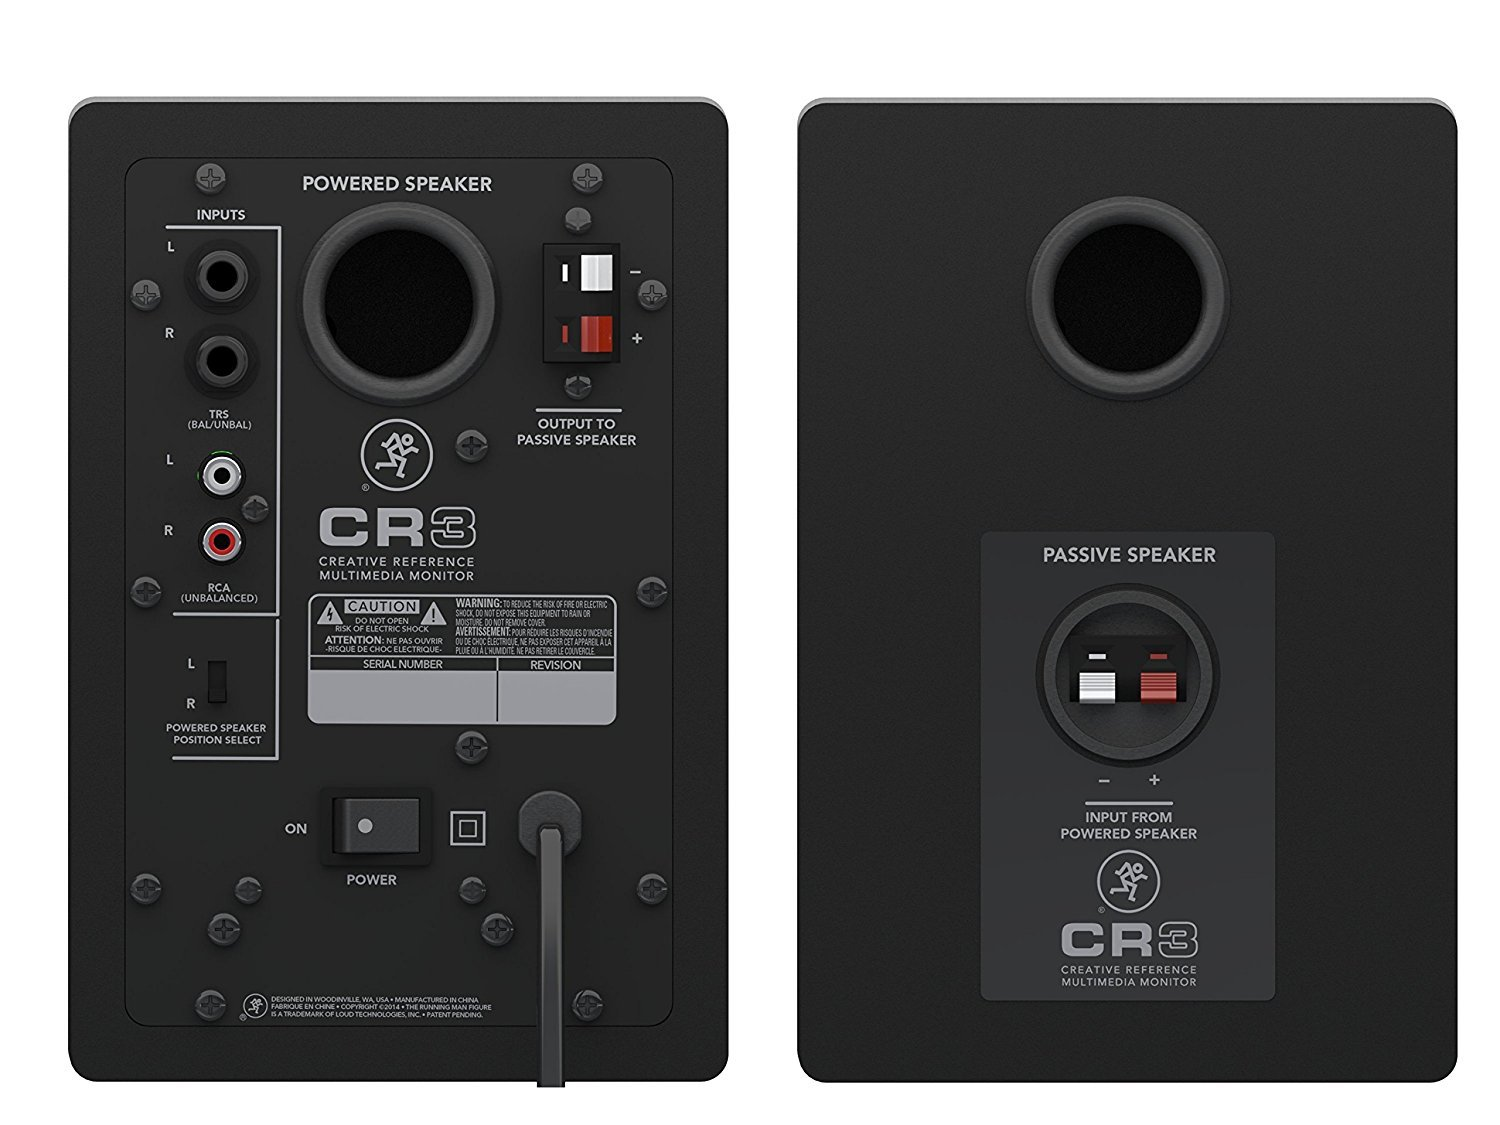 Mackie CR3 3'' Creative Reference Multimedia Monitors Bundle with Mackie Onyx Artist 1-2 USB Audio Interface and Tascam TH-02 Closed Back Studio Headphones by Circuit City (Image #4)